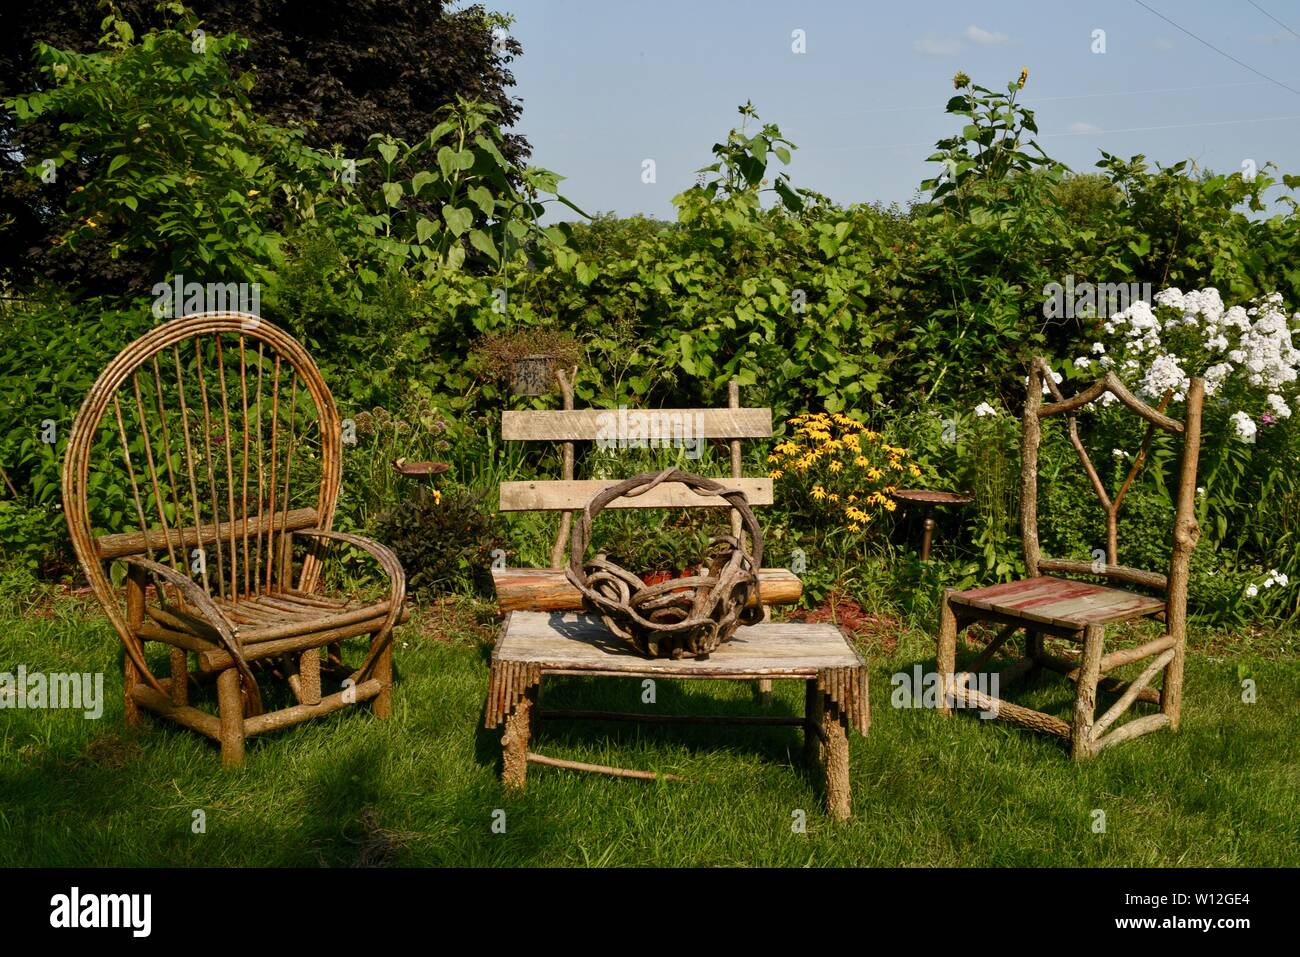 Rustic, wooden hand crafted outdoor furniture chairs and ...